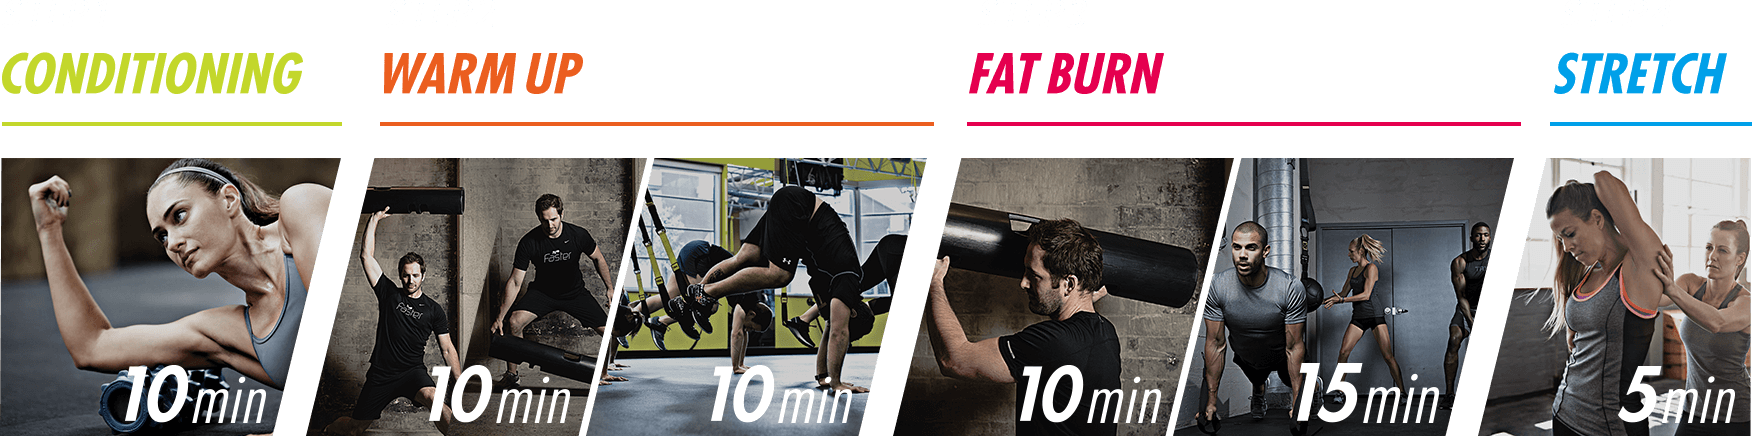 STEP1 CONDITIONING、STEP2 WARM UP、STEP3 FAT BURN、STEP4 STRETCH